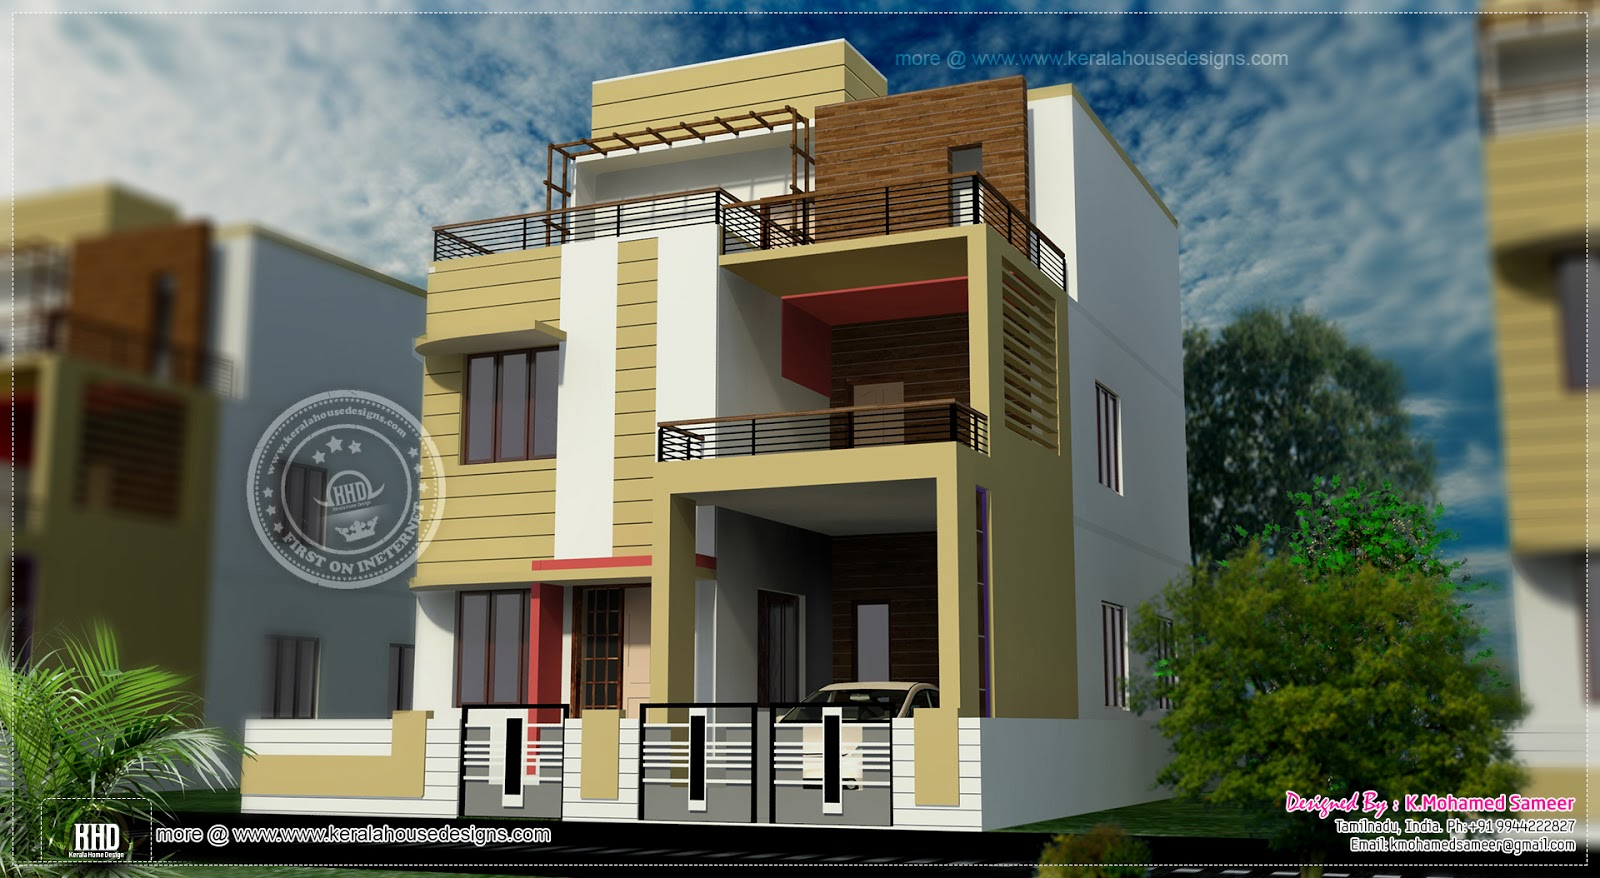 BUAT TESTING DOANG: 3d Modern Floor House Plan on 3 garage house plans, 2 floor house plans, 3 floor home, 3 bedroom 1 floor plans, 3 room house plans, small house floor plans, 3 floor building plans, 3 bed 2 bath floor plans, 3 bed house plans, 3 level house plans, modern house floor plans, 1 floor house plans, craftsman house floor plans, bath house floor plans, 3-story small tower plans, 3 storey house plans, 3 unit house plans, 3 car house plans, ranch home plans with open floor plans, 4 floor house plans,